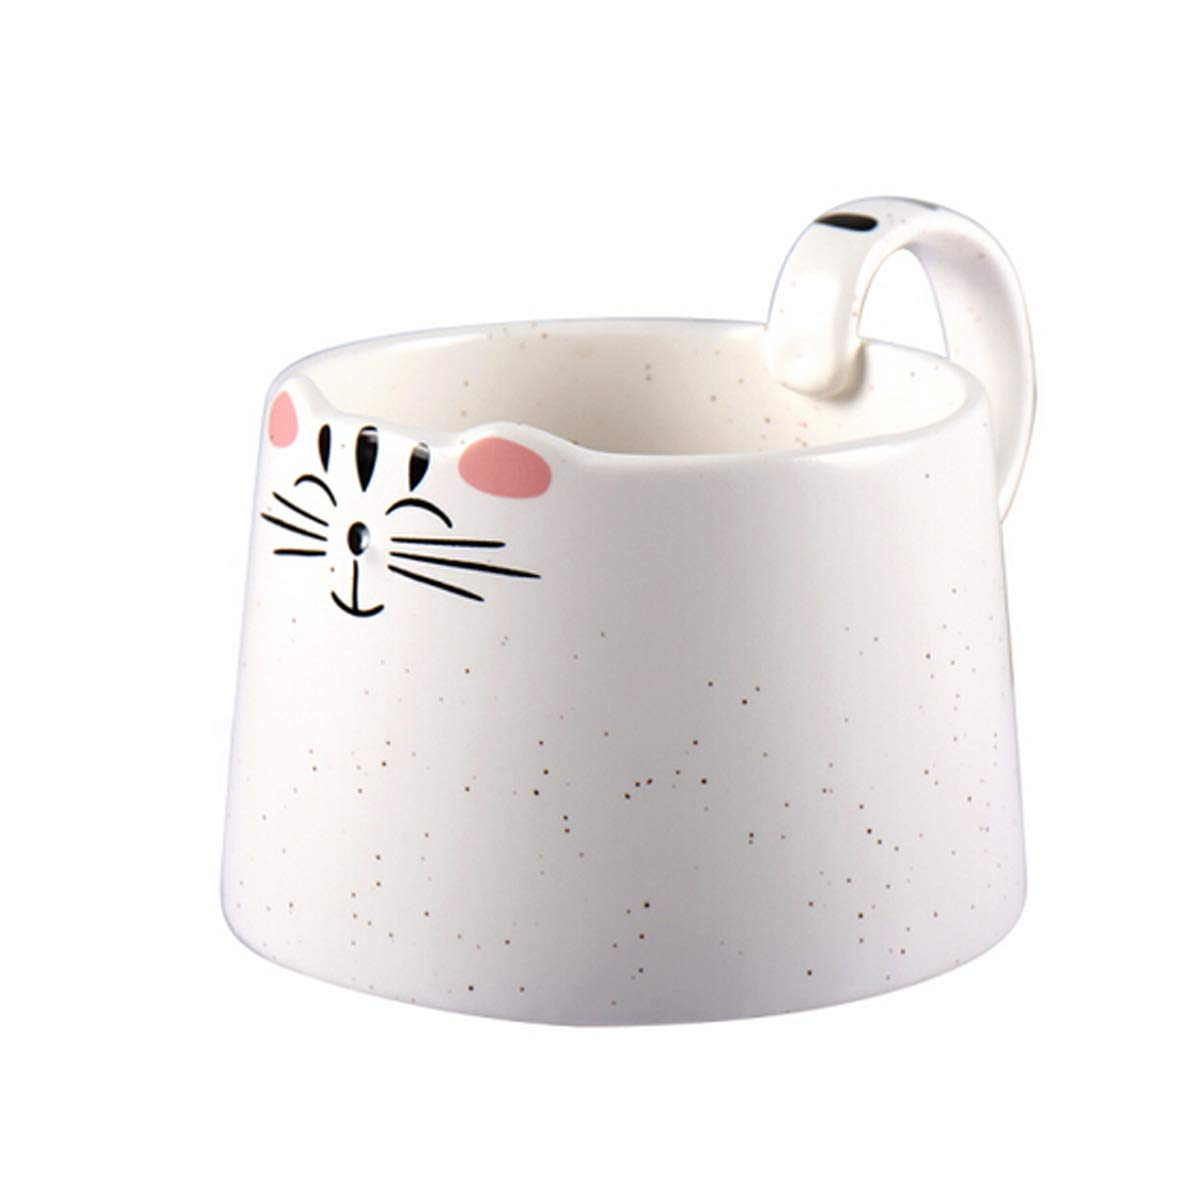 Shengshihuizhong Creative Cup Cute Cartoon Cup Ceramic Coffee Cup Couple Cup Breakfast Milk Cup - White Drinking Cup